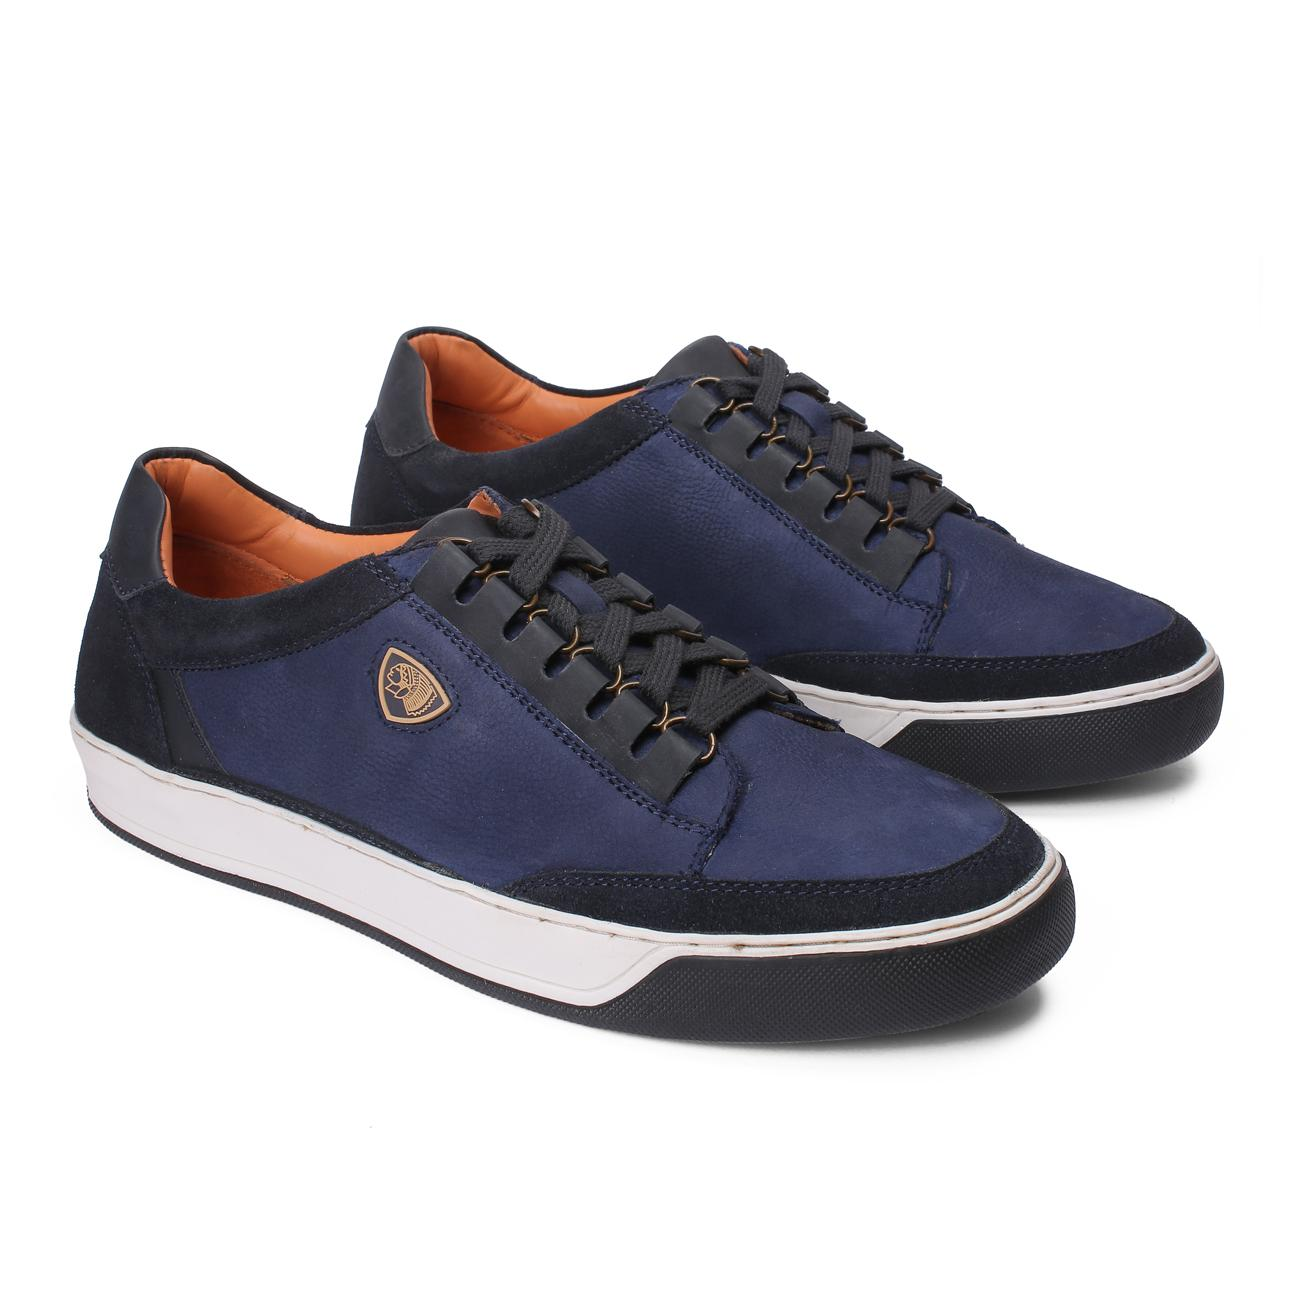 blue casual leather shoes rubber sole